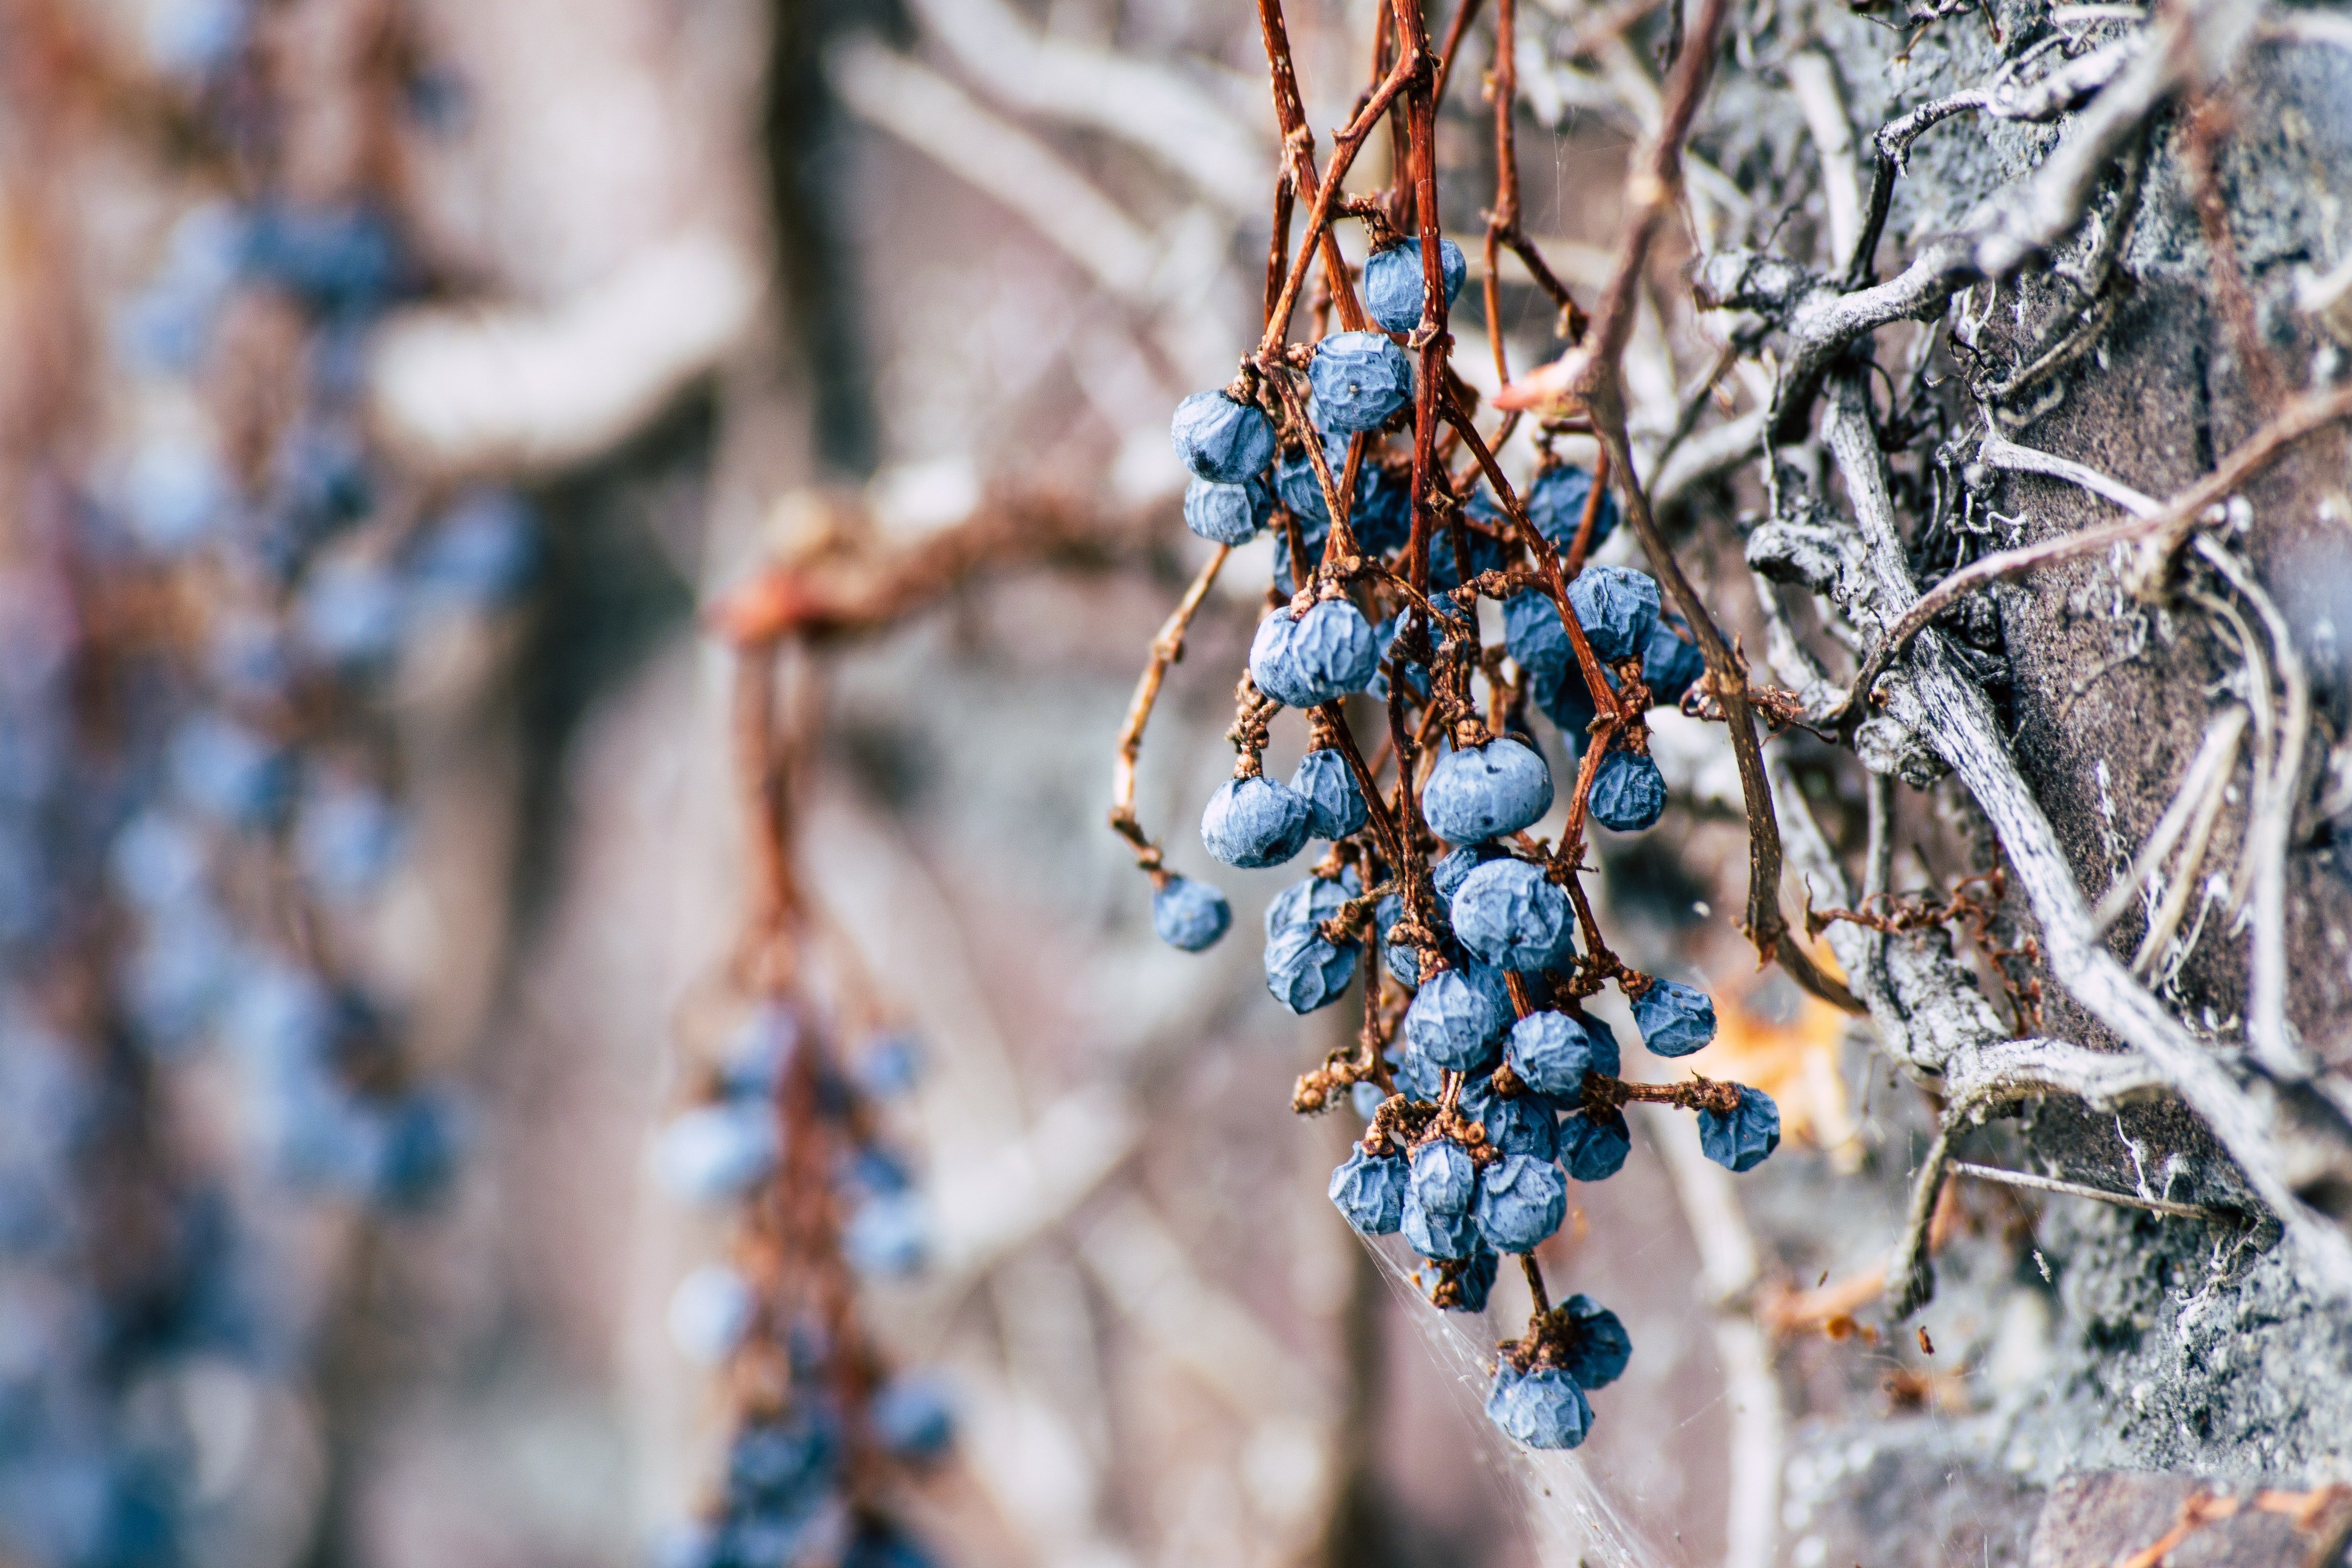 Dry blue berries on a branch of a tree without leaves, Dry blue berries on a branch of a tree without leaves